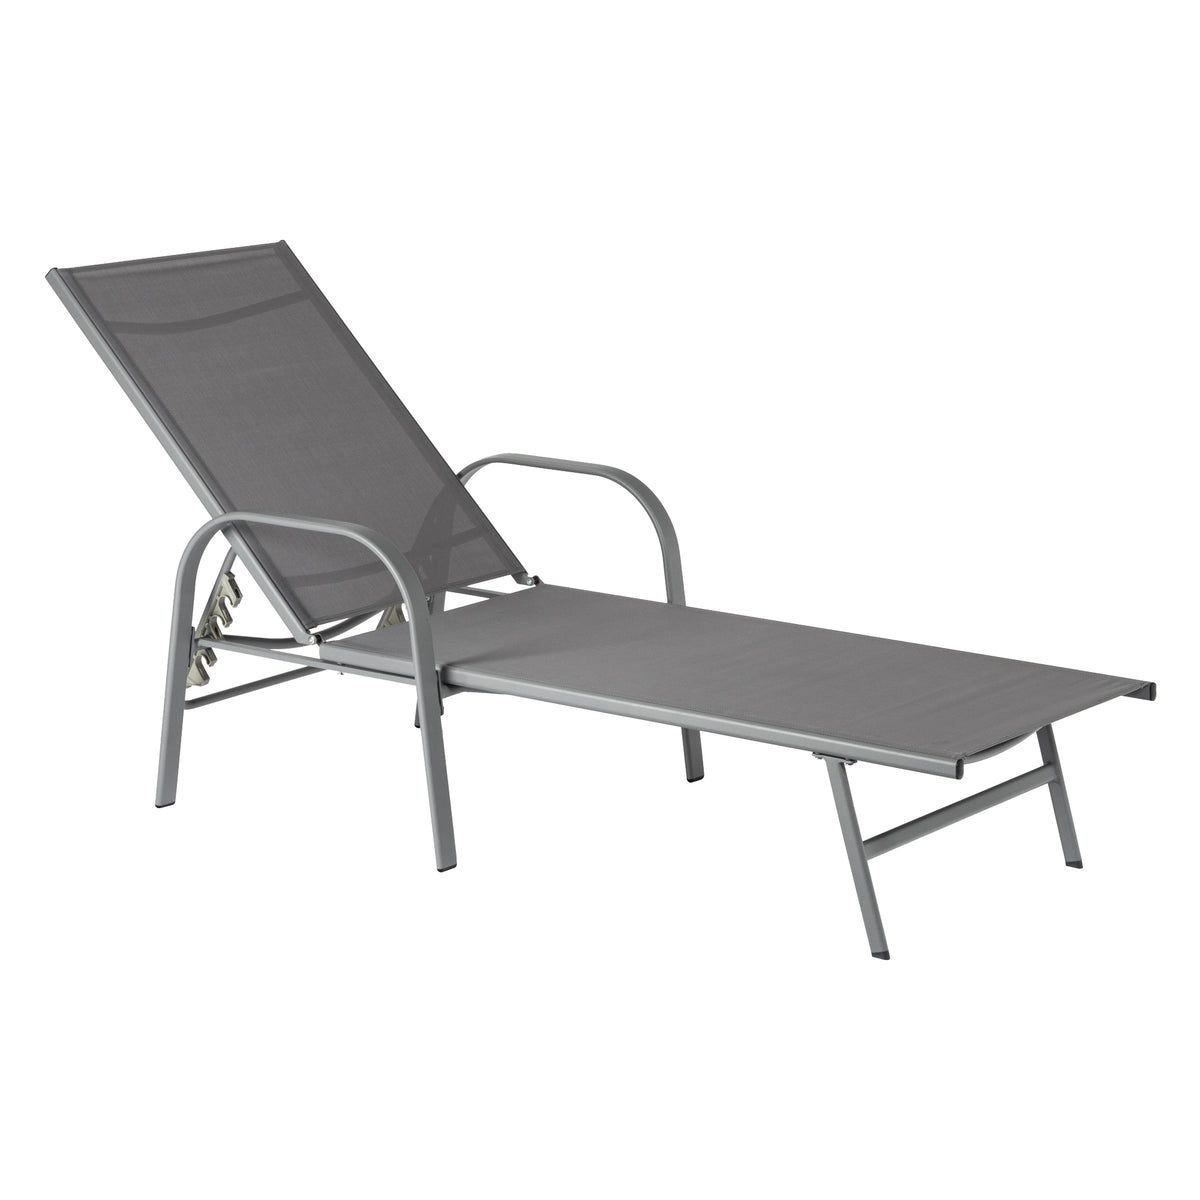 Harbour Housewares Sussex Adjustable Garden Sun Lounger Bed - Grey